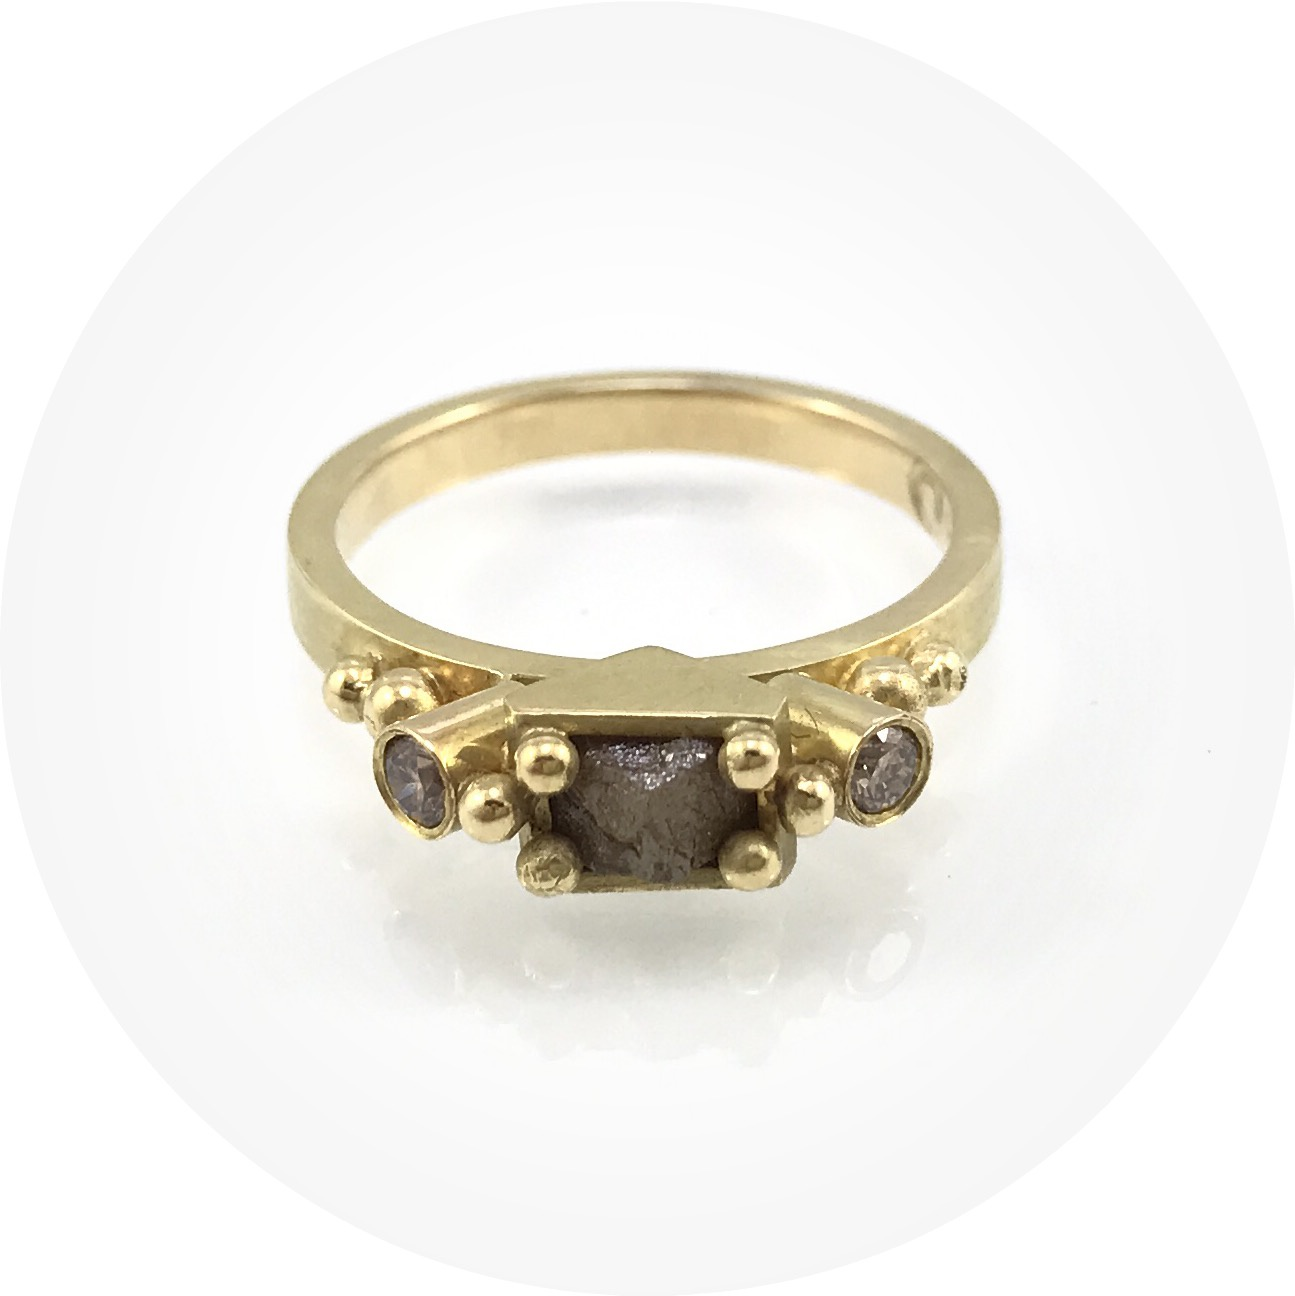 Susan Ewington - Rough diamond and champagne diamond granule ring in 18ct yellow gold